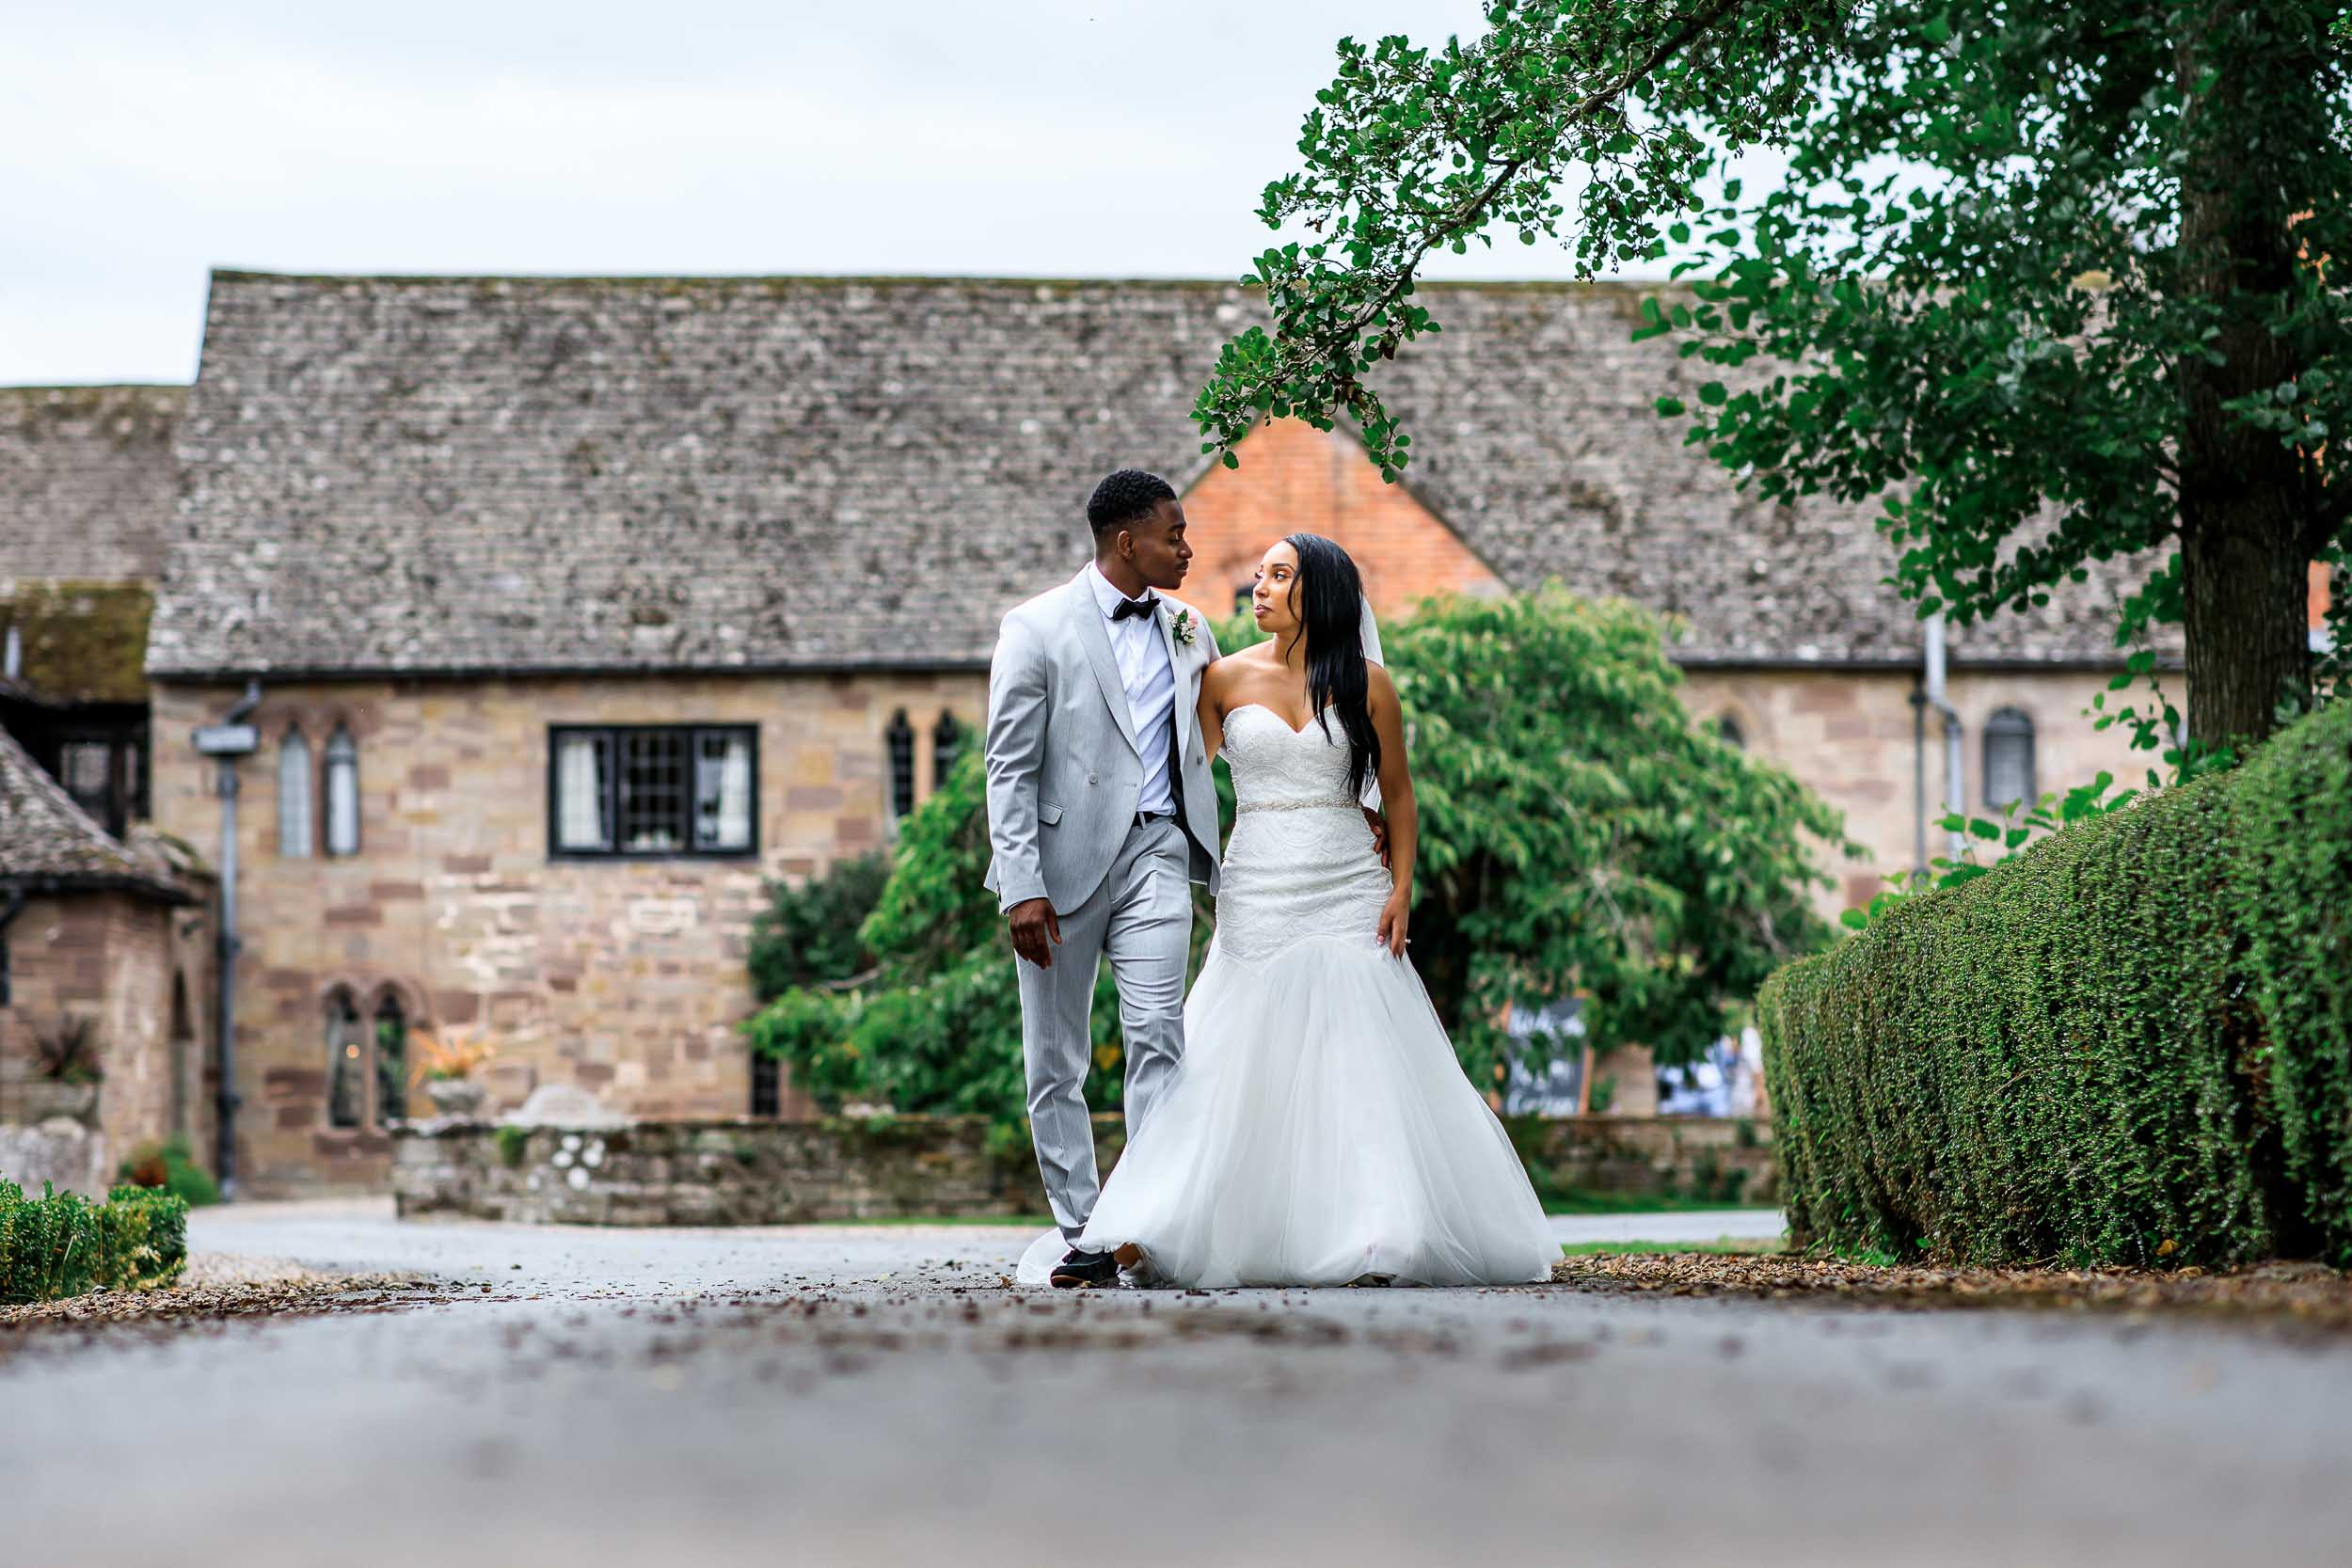 Brinsop Court, Brinsop, Court, Herefordshire, wedding, Photographer, Herefordshire wedding photographer, Photographers, Wedding venue, Westmidlands wedding photographer,